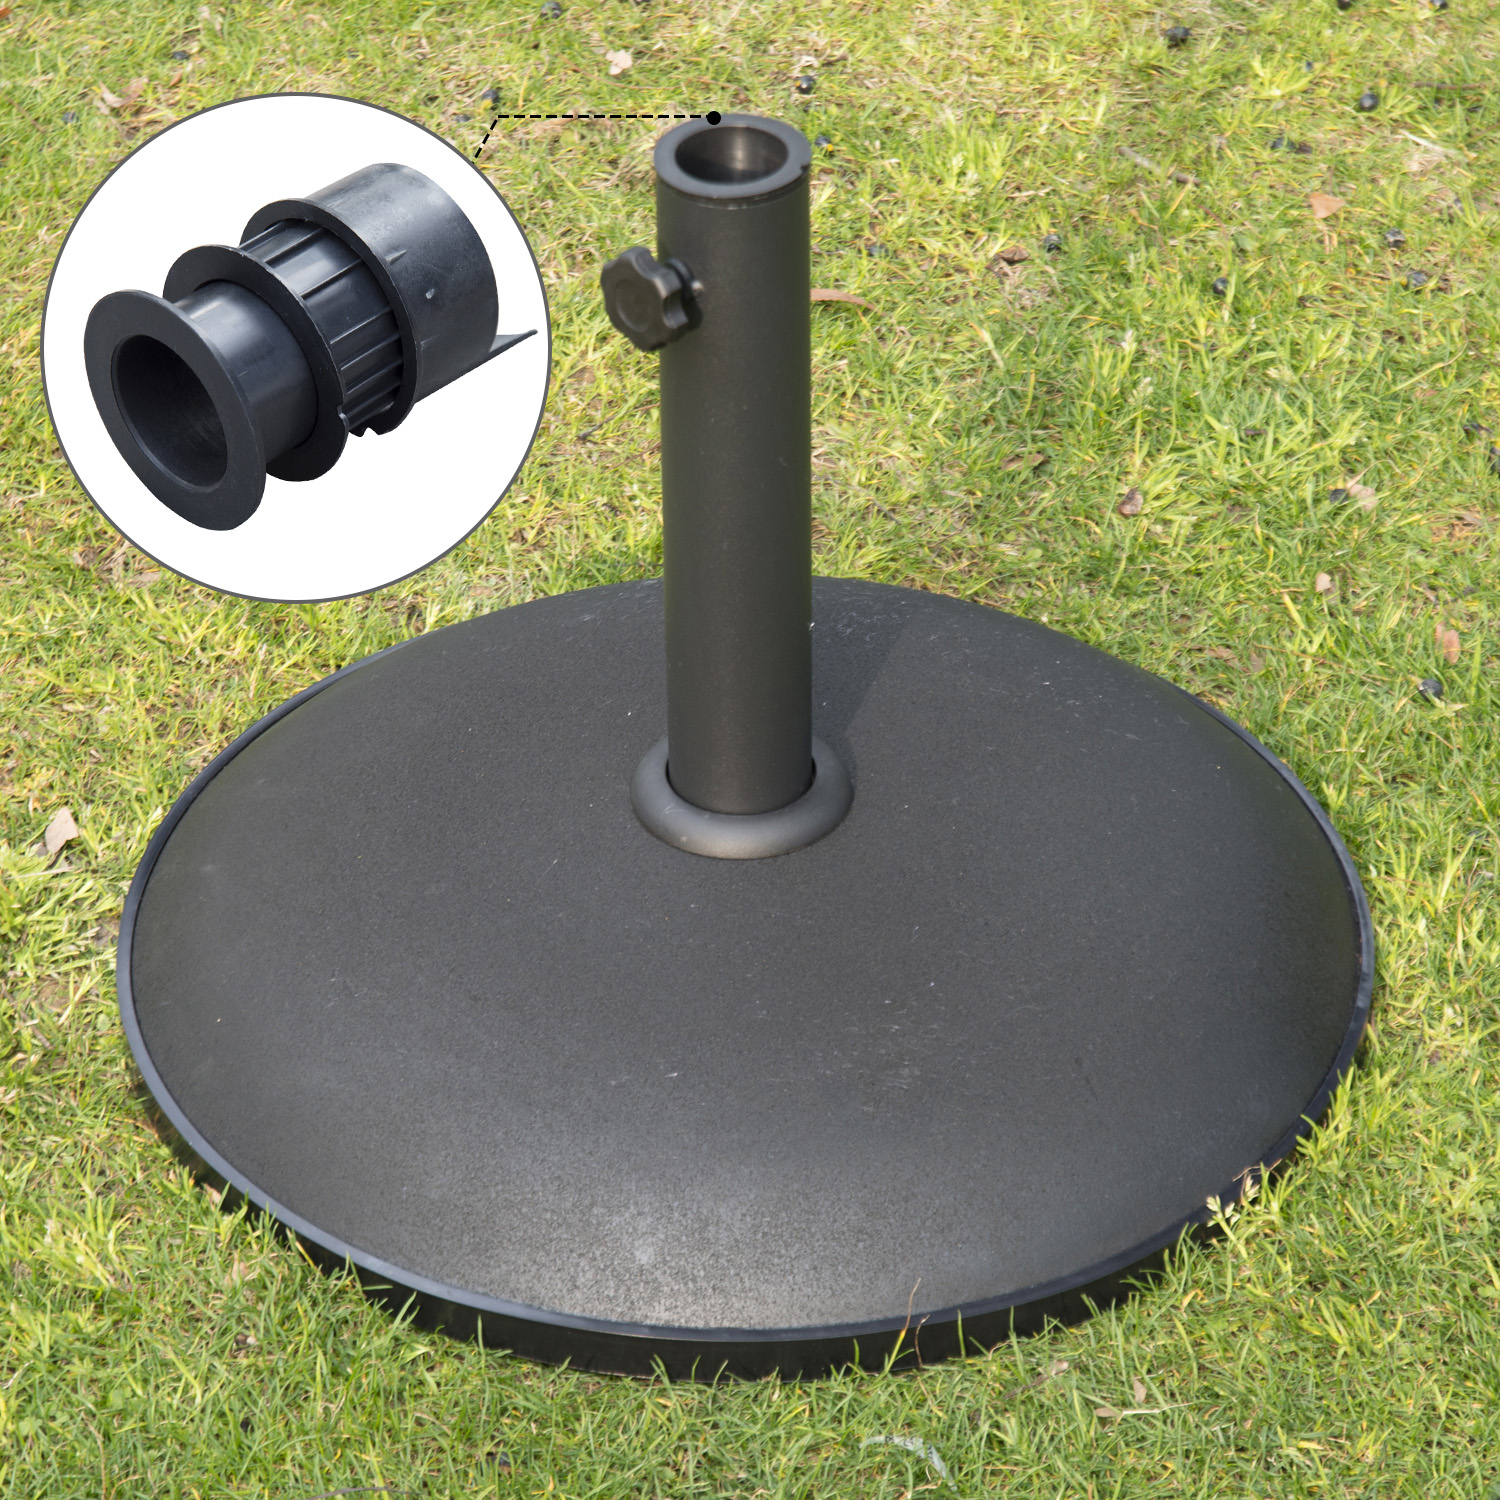 "Image of CAD $69.99 Outsunny 20"" Round Cement Umbrella Base Concrete Stand Holder Offset Black / Patio Outdoor Living Canada 95509799357"